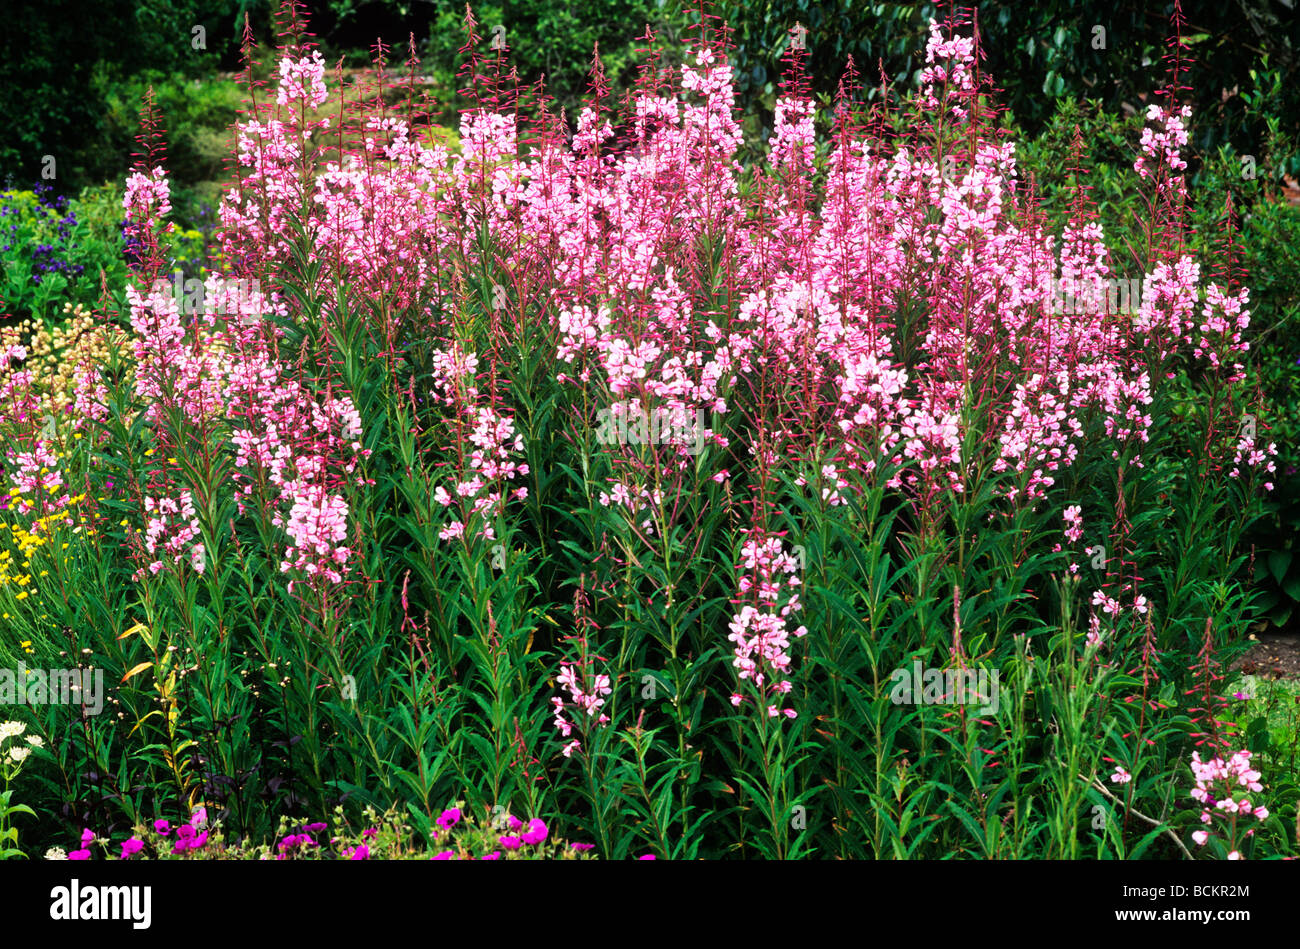 Epilobium angustifolium stahl rose growing in border pink flower epilobium angustifolium stahl rose growing in border pink flower flowers garden plant plants epilobiums mightylinksfo